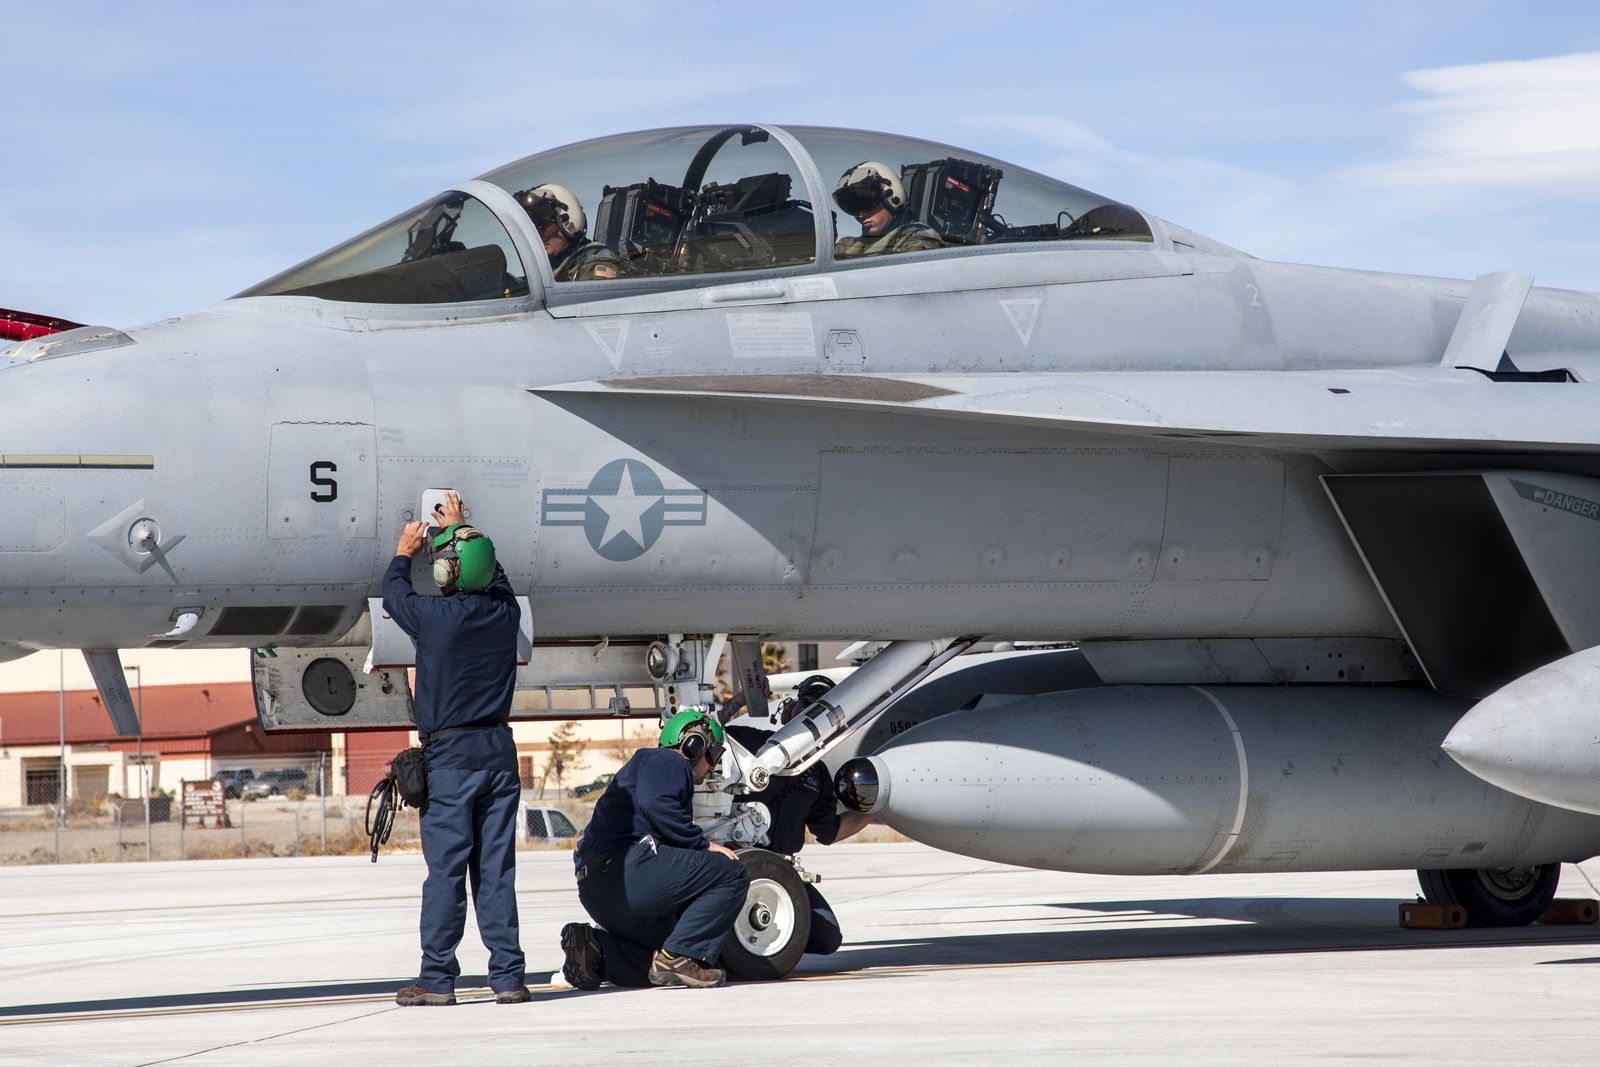 U.S. Navy Approves F/A-18 Super Hornet IRST System for Production